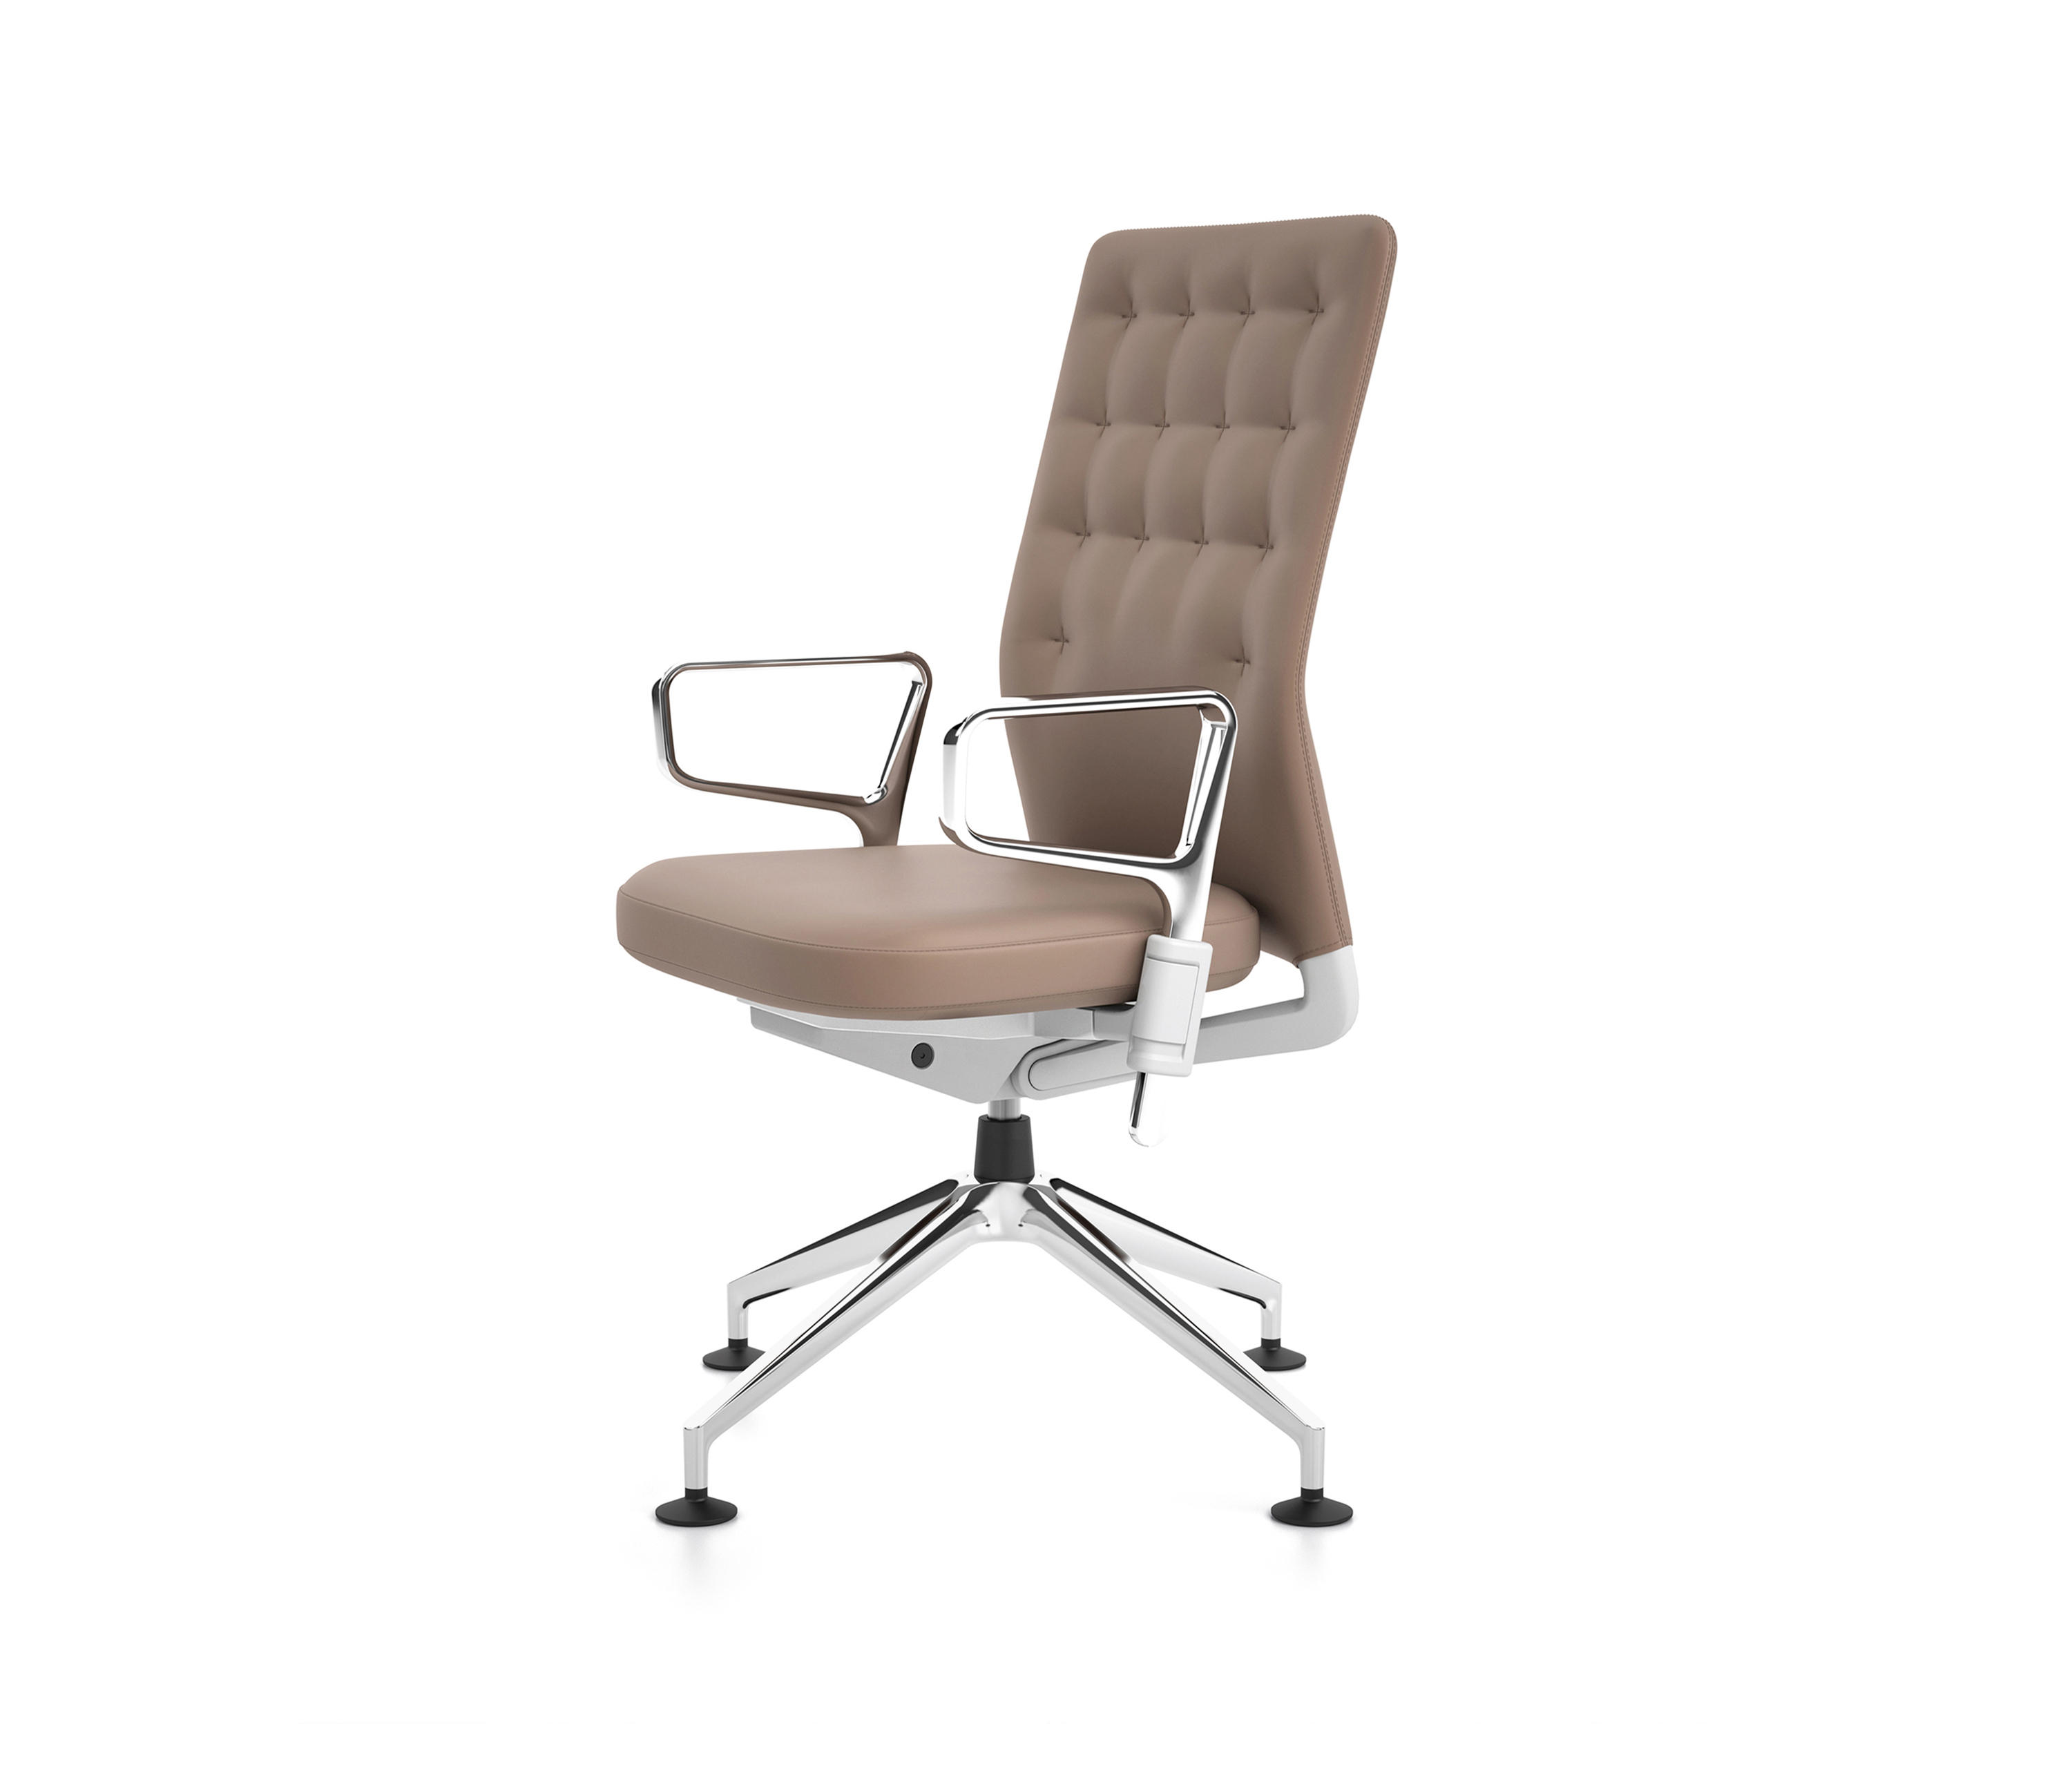 Id trim task chairs from vitra architonic for Vitra home desk replica